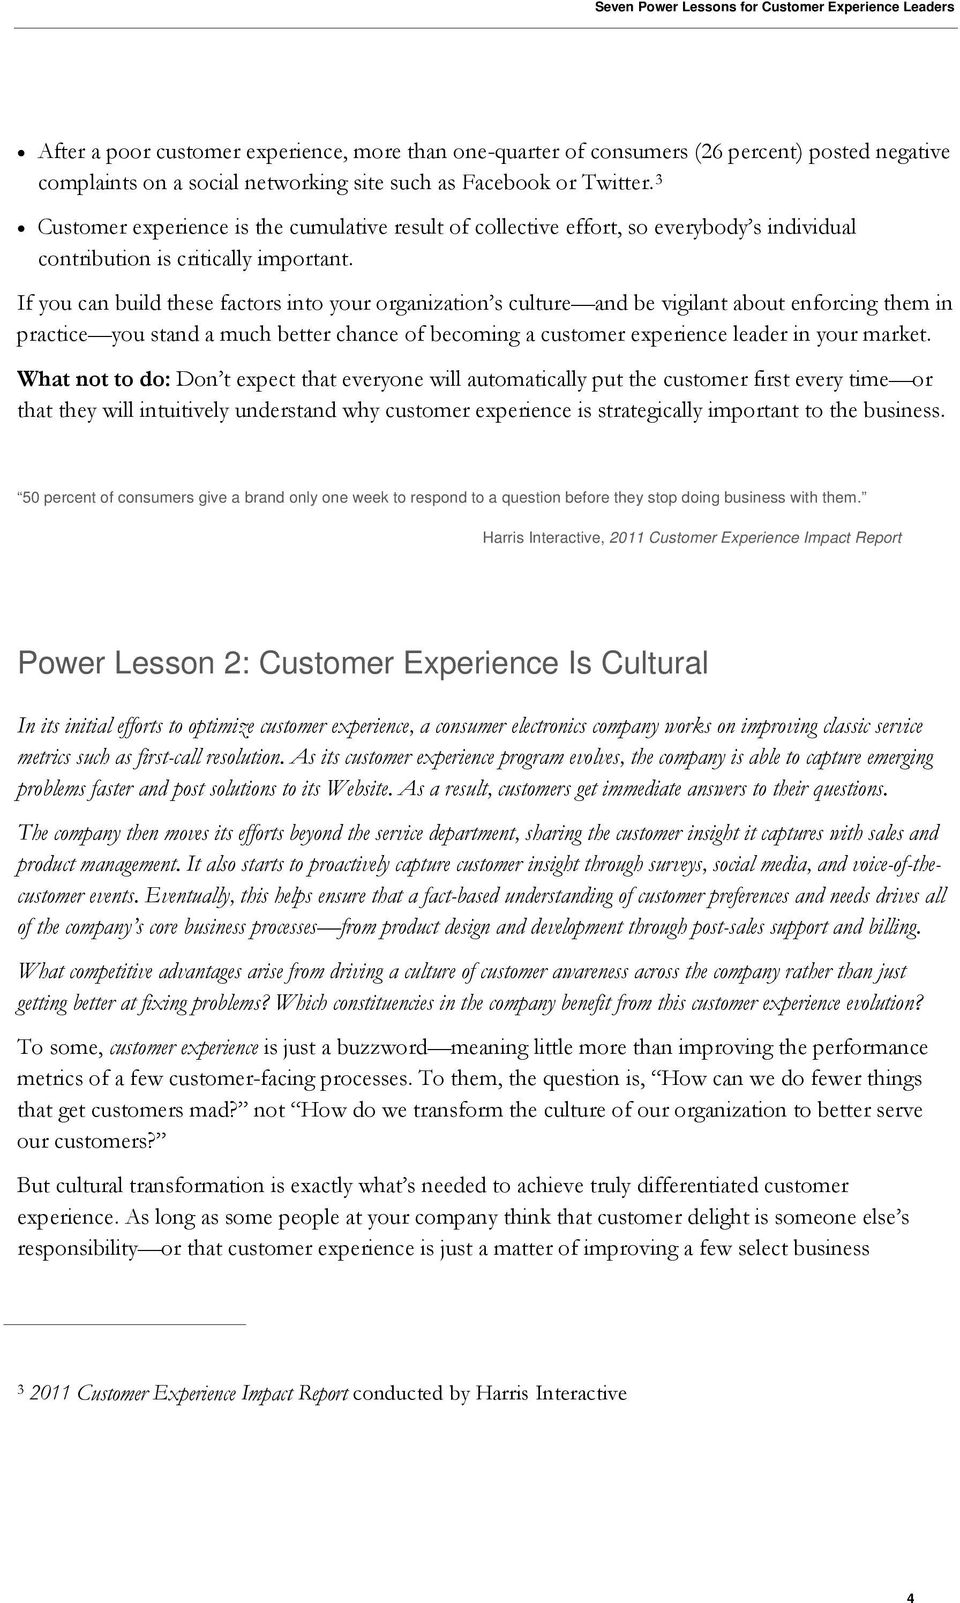 If you can build these factors into your organization s culture and be vigilant about enforcing them in practice you stand a much better chance of becoming a customer experience leader in your market.